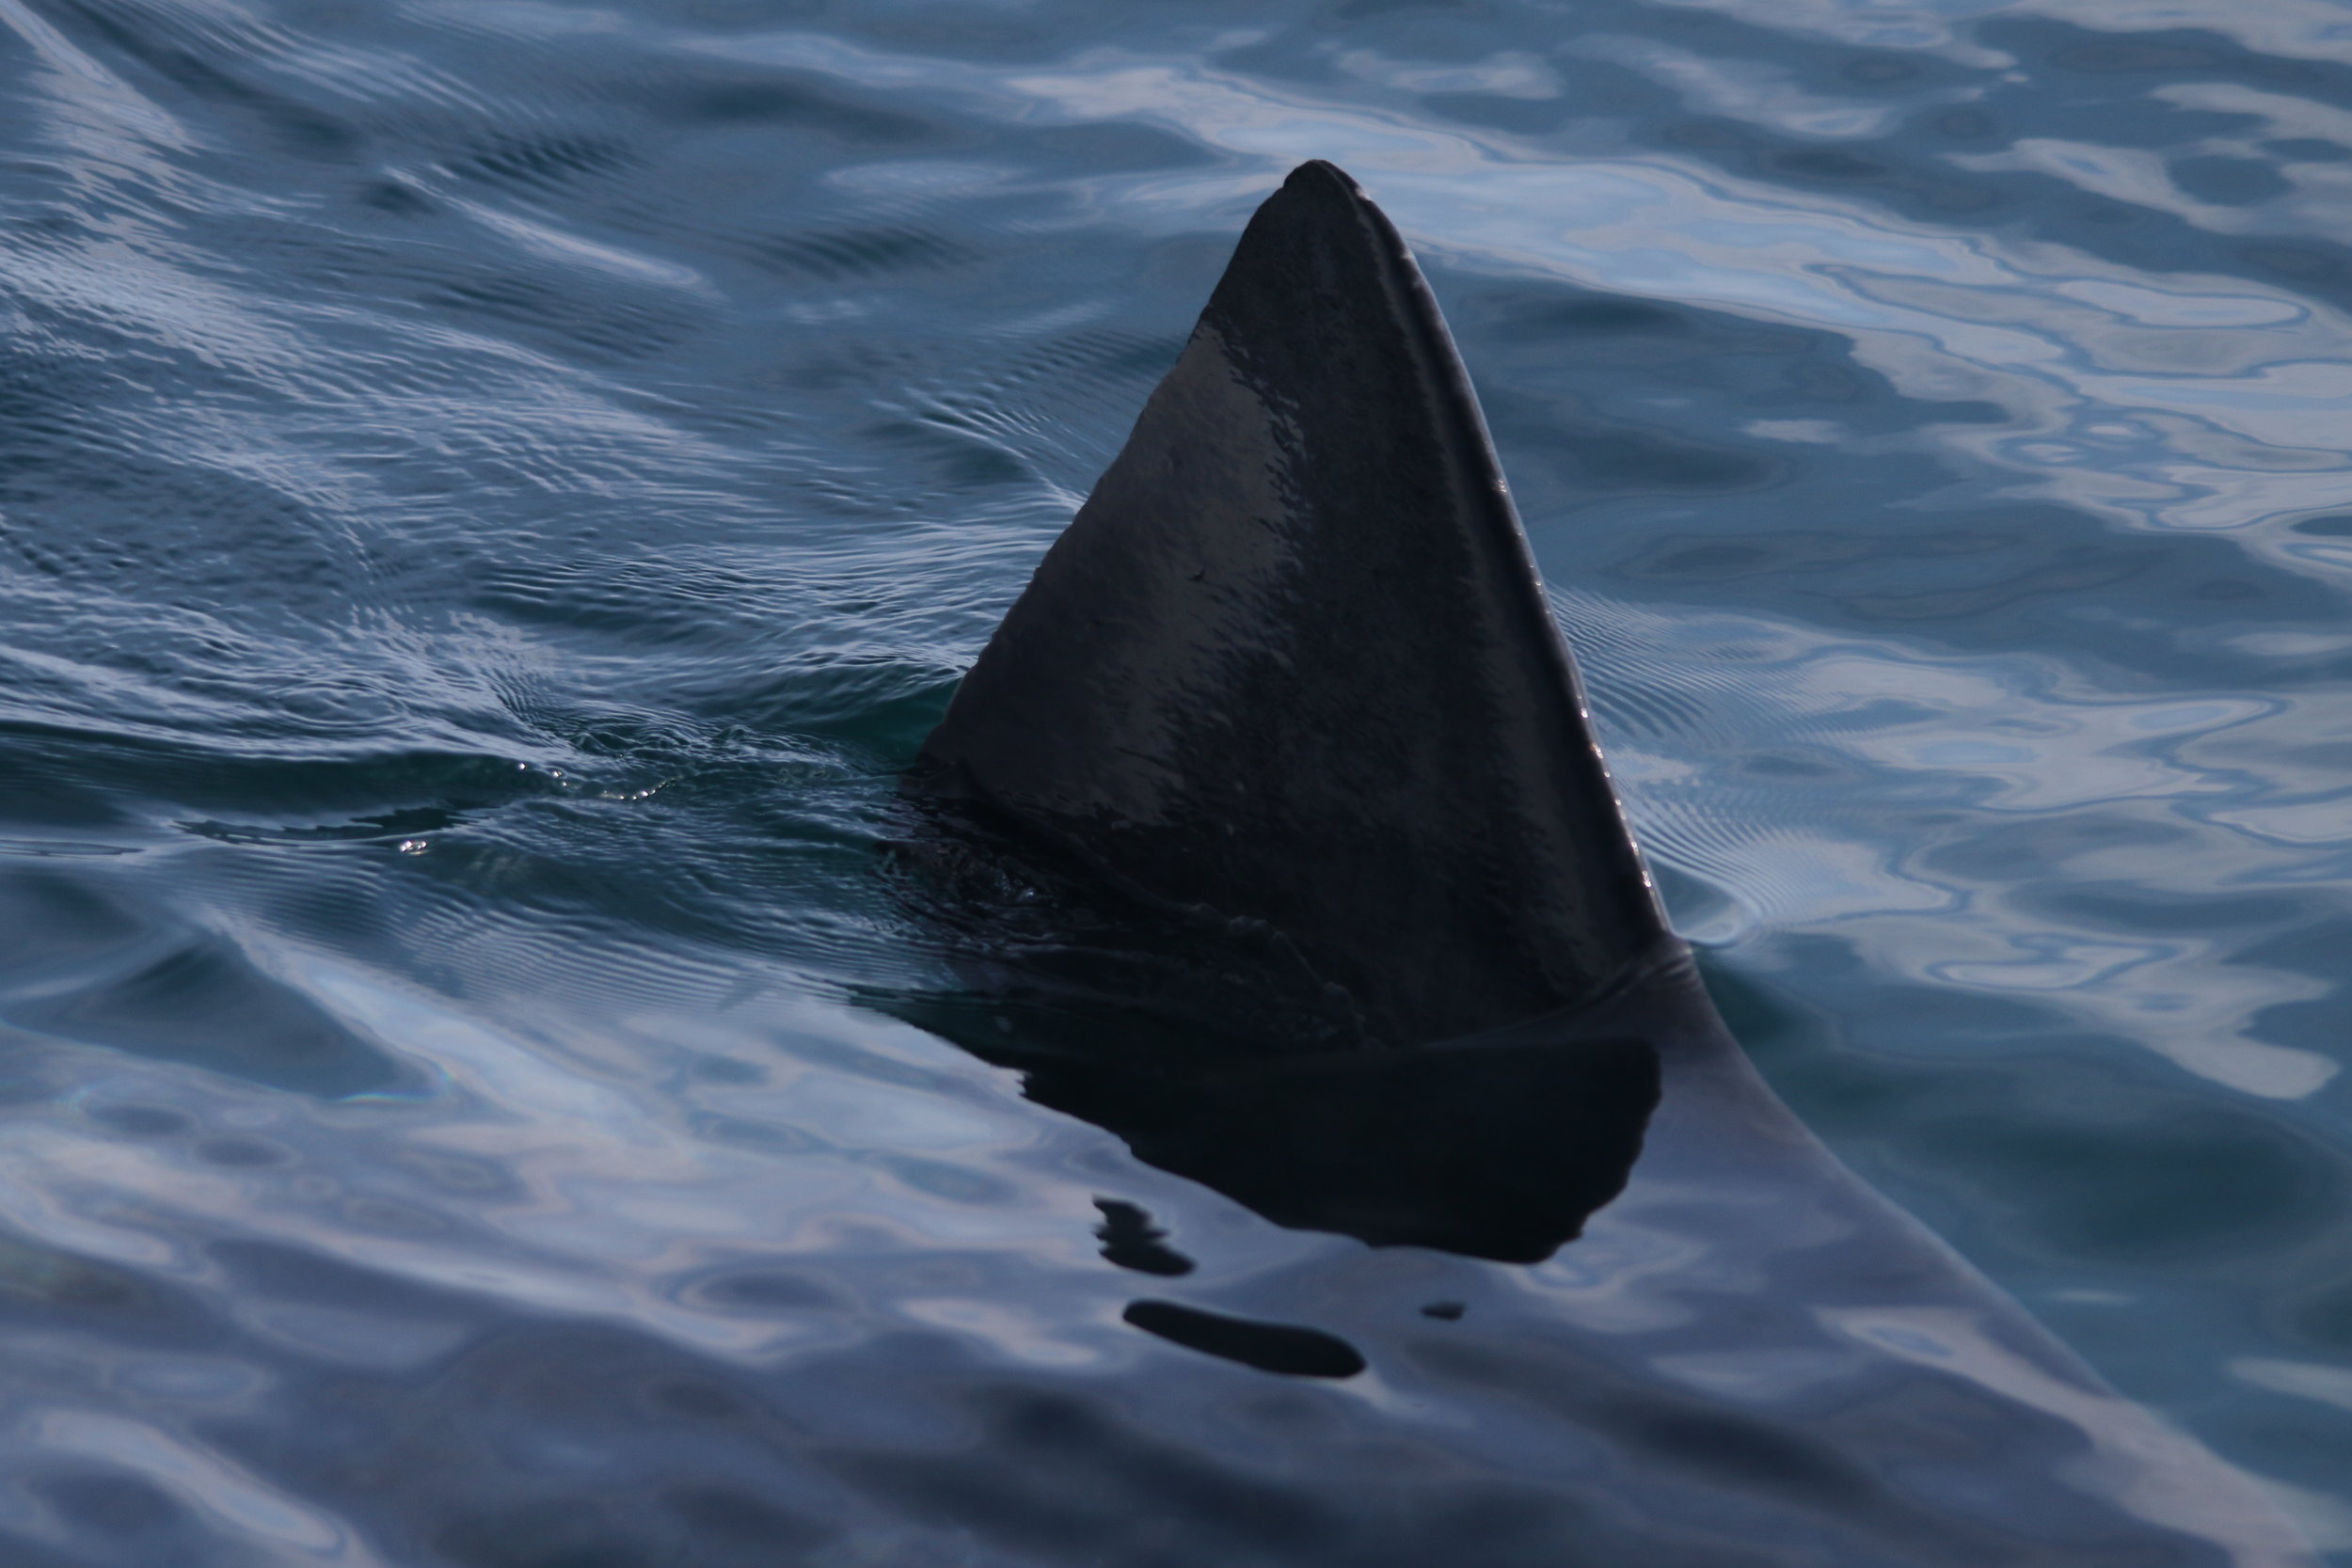 A basking shark swam right past the stern of the boat!